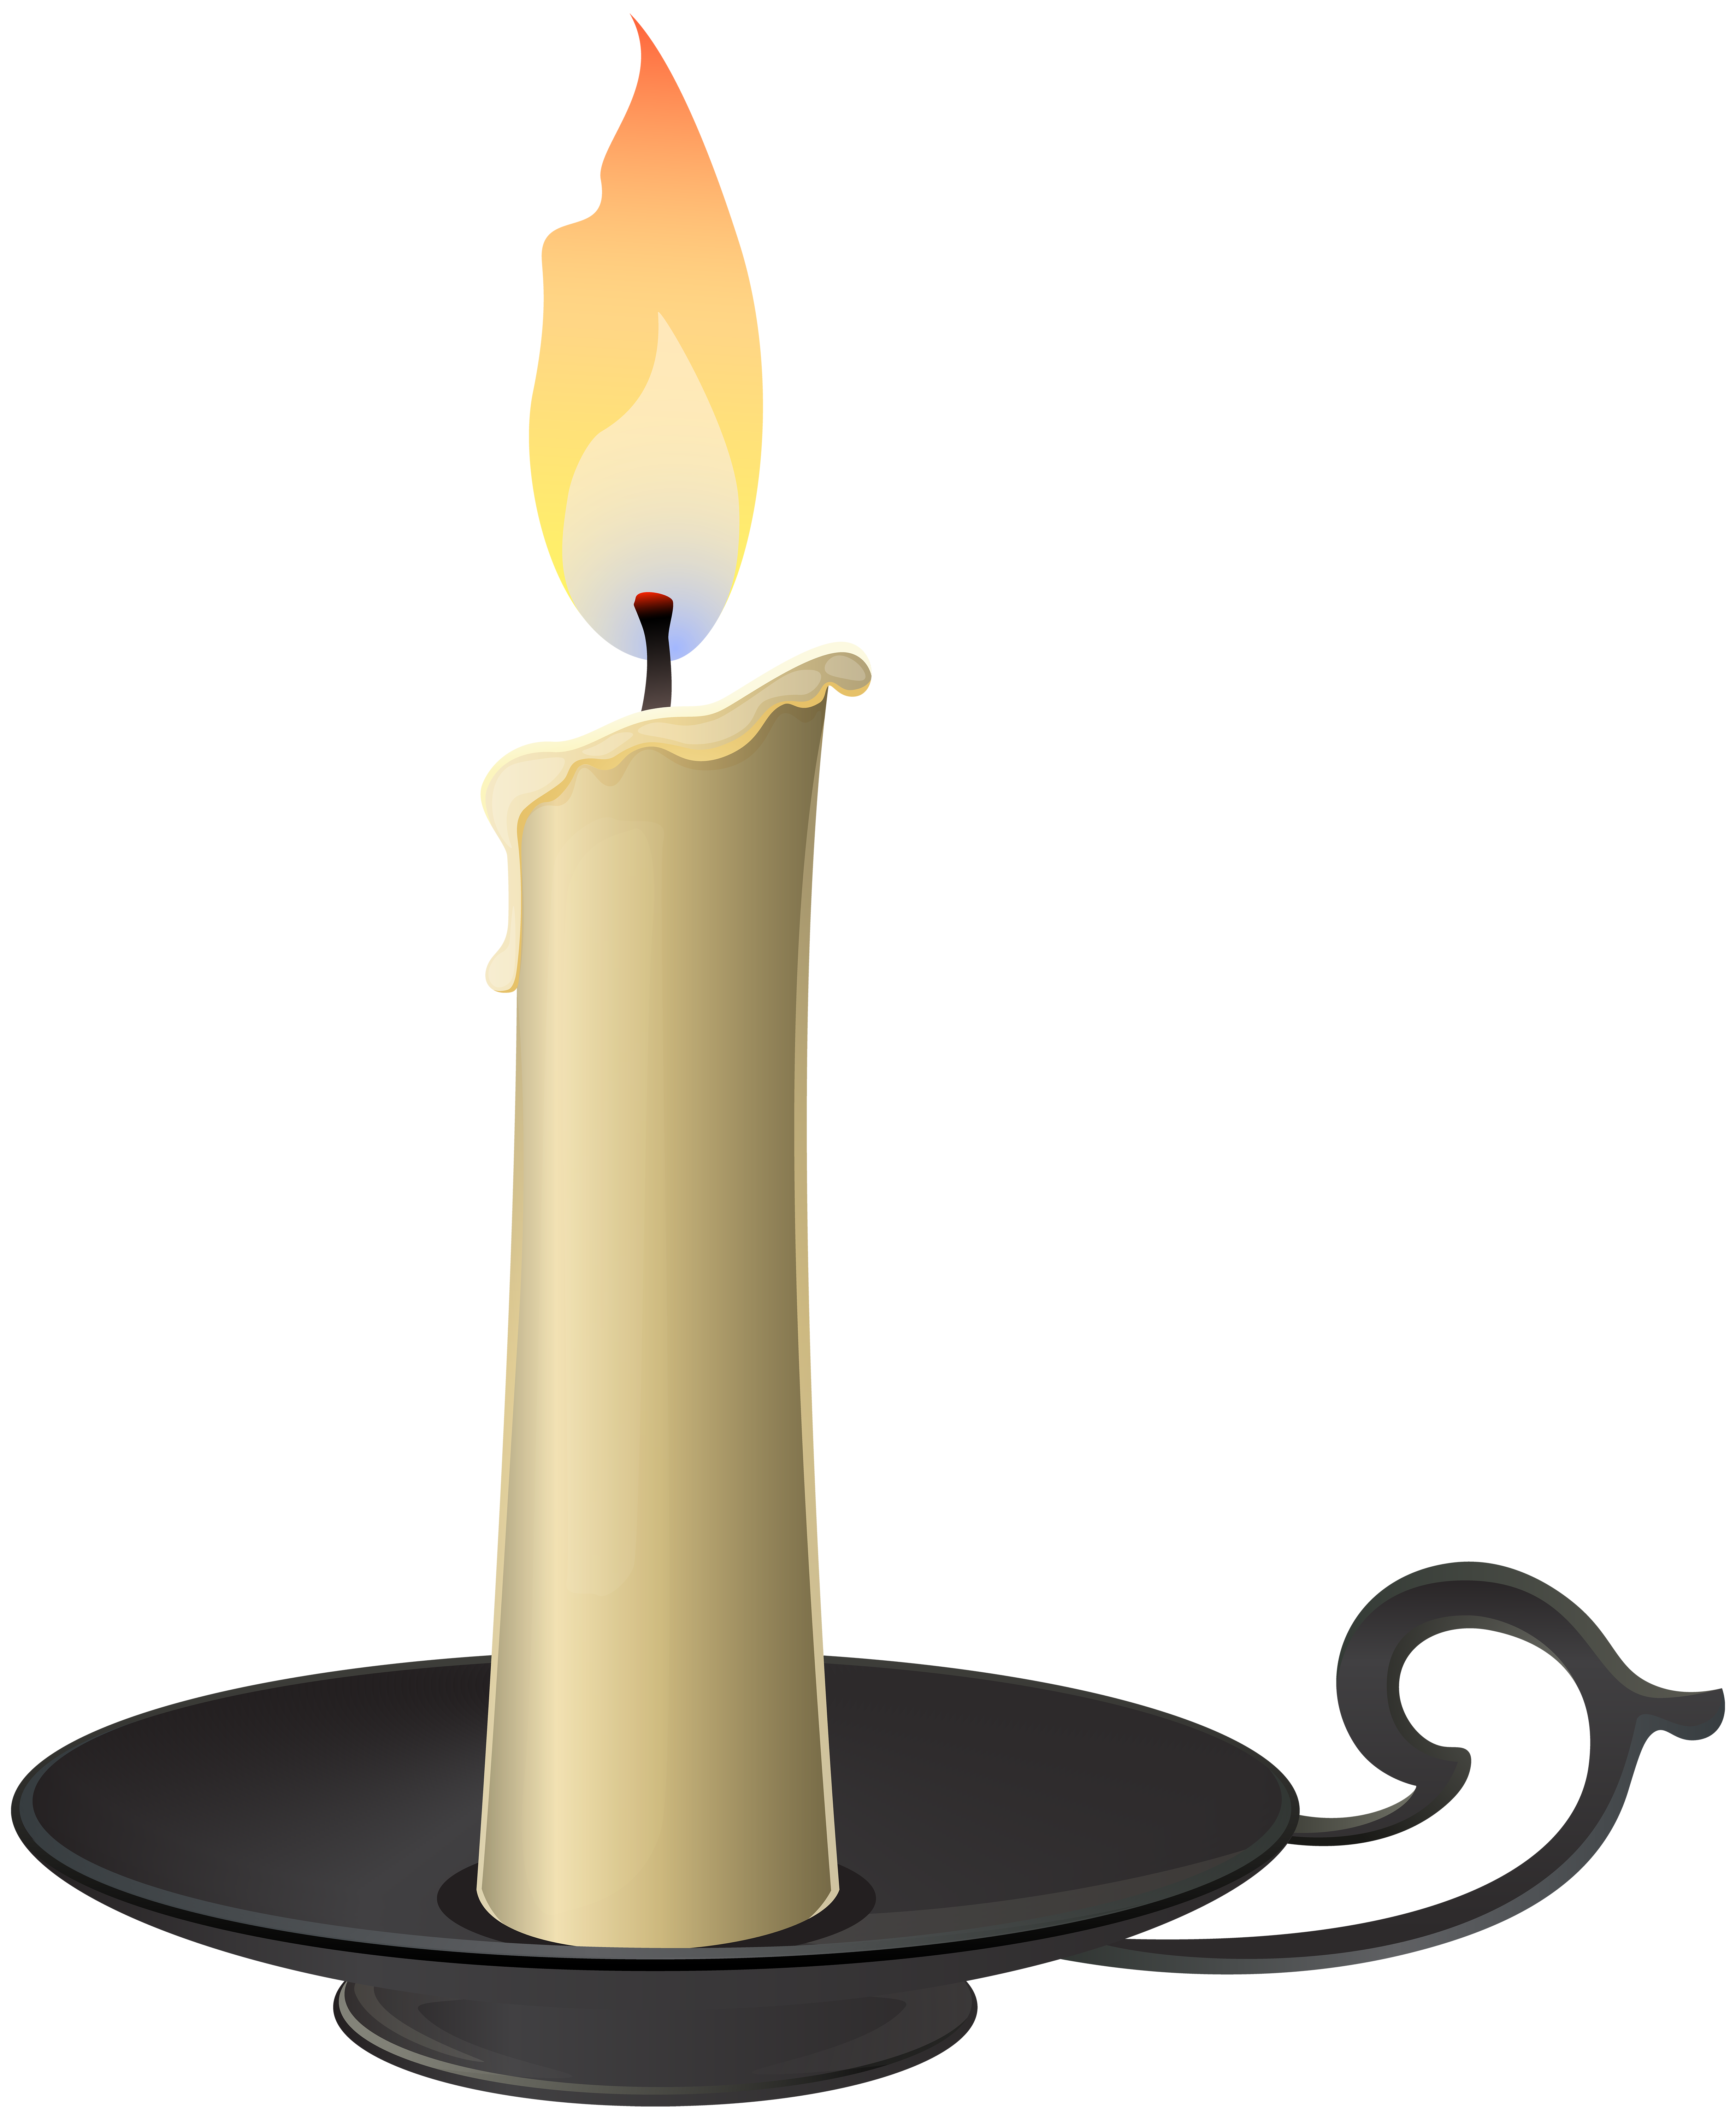 Clipart books candle. Candlestick png clip art